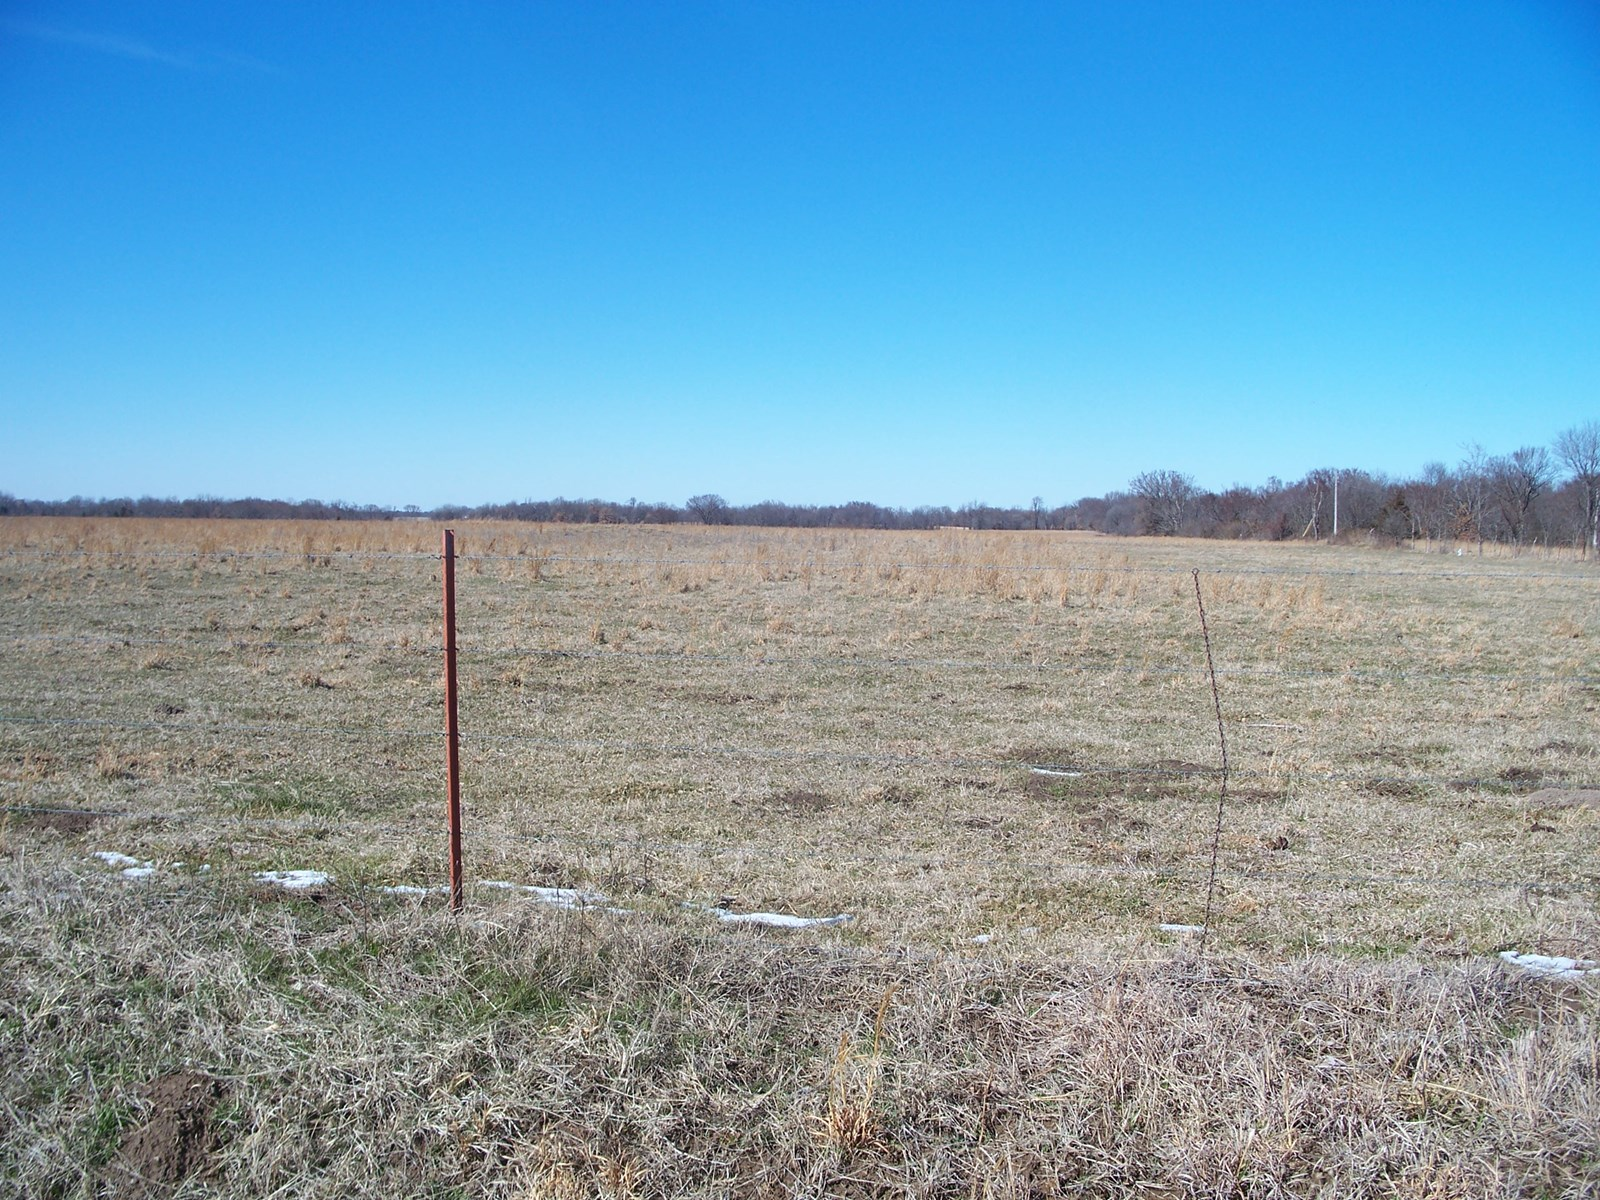 80 ACRES OF PRIME LAND WITH STATE HIGHWAY FRONTAGE IN NE OK